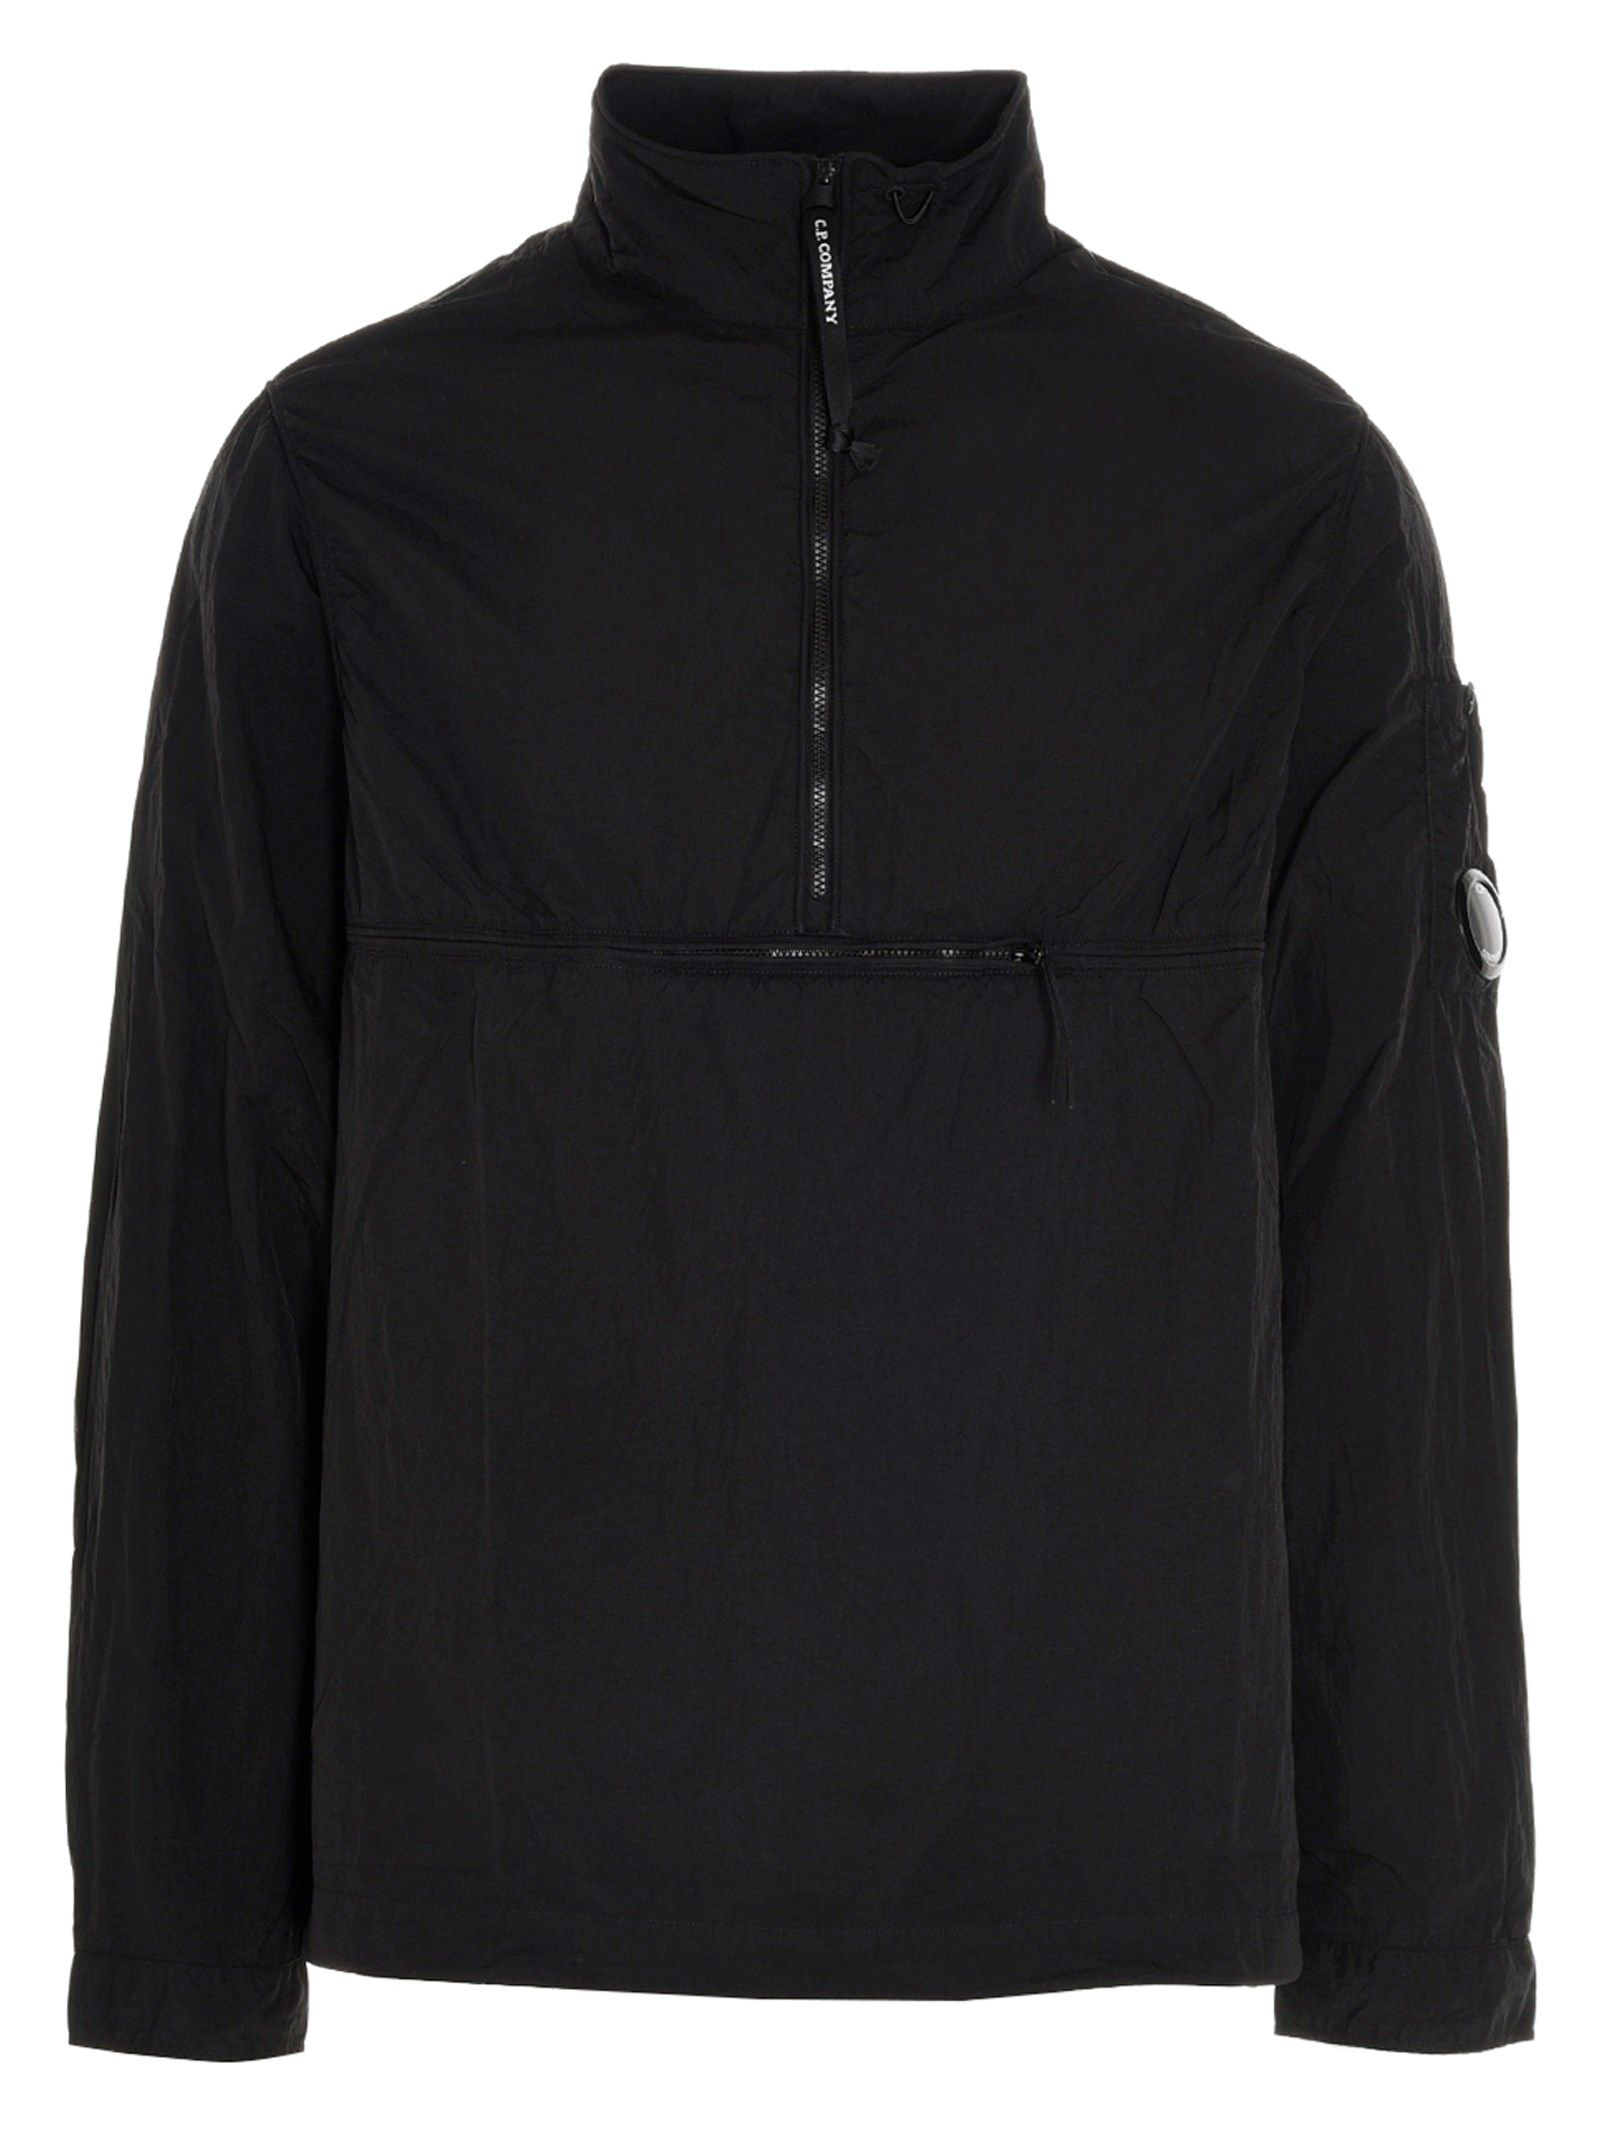 C.p. Company Jackets CP COMPANY MEN'S 10CMSH178A005665G999 BLACK OTHER MATERIALS OUTERWEAR JACKET